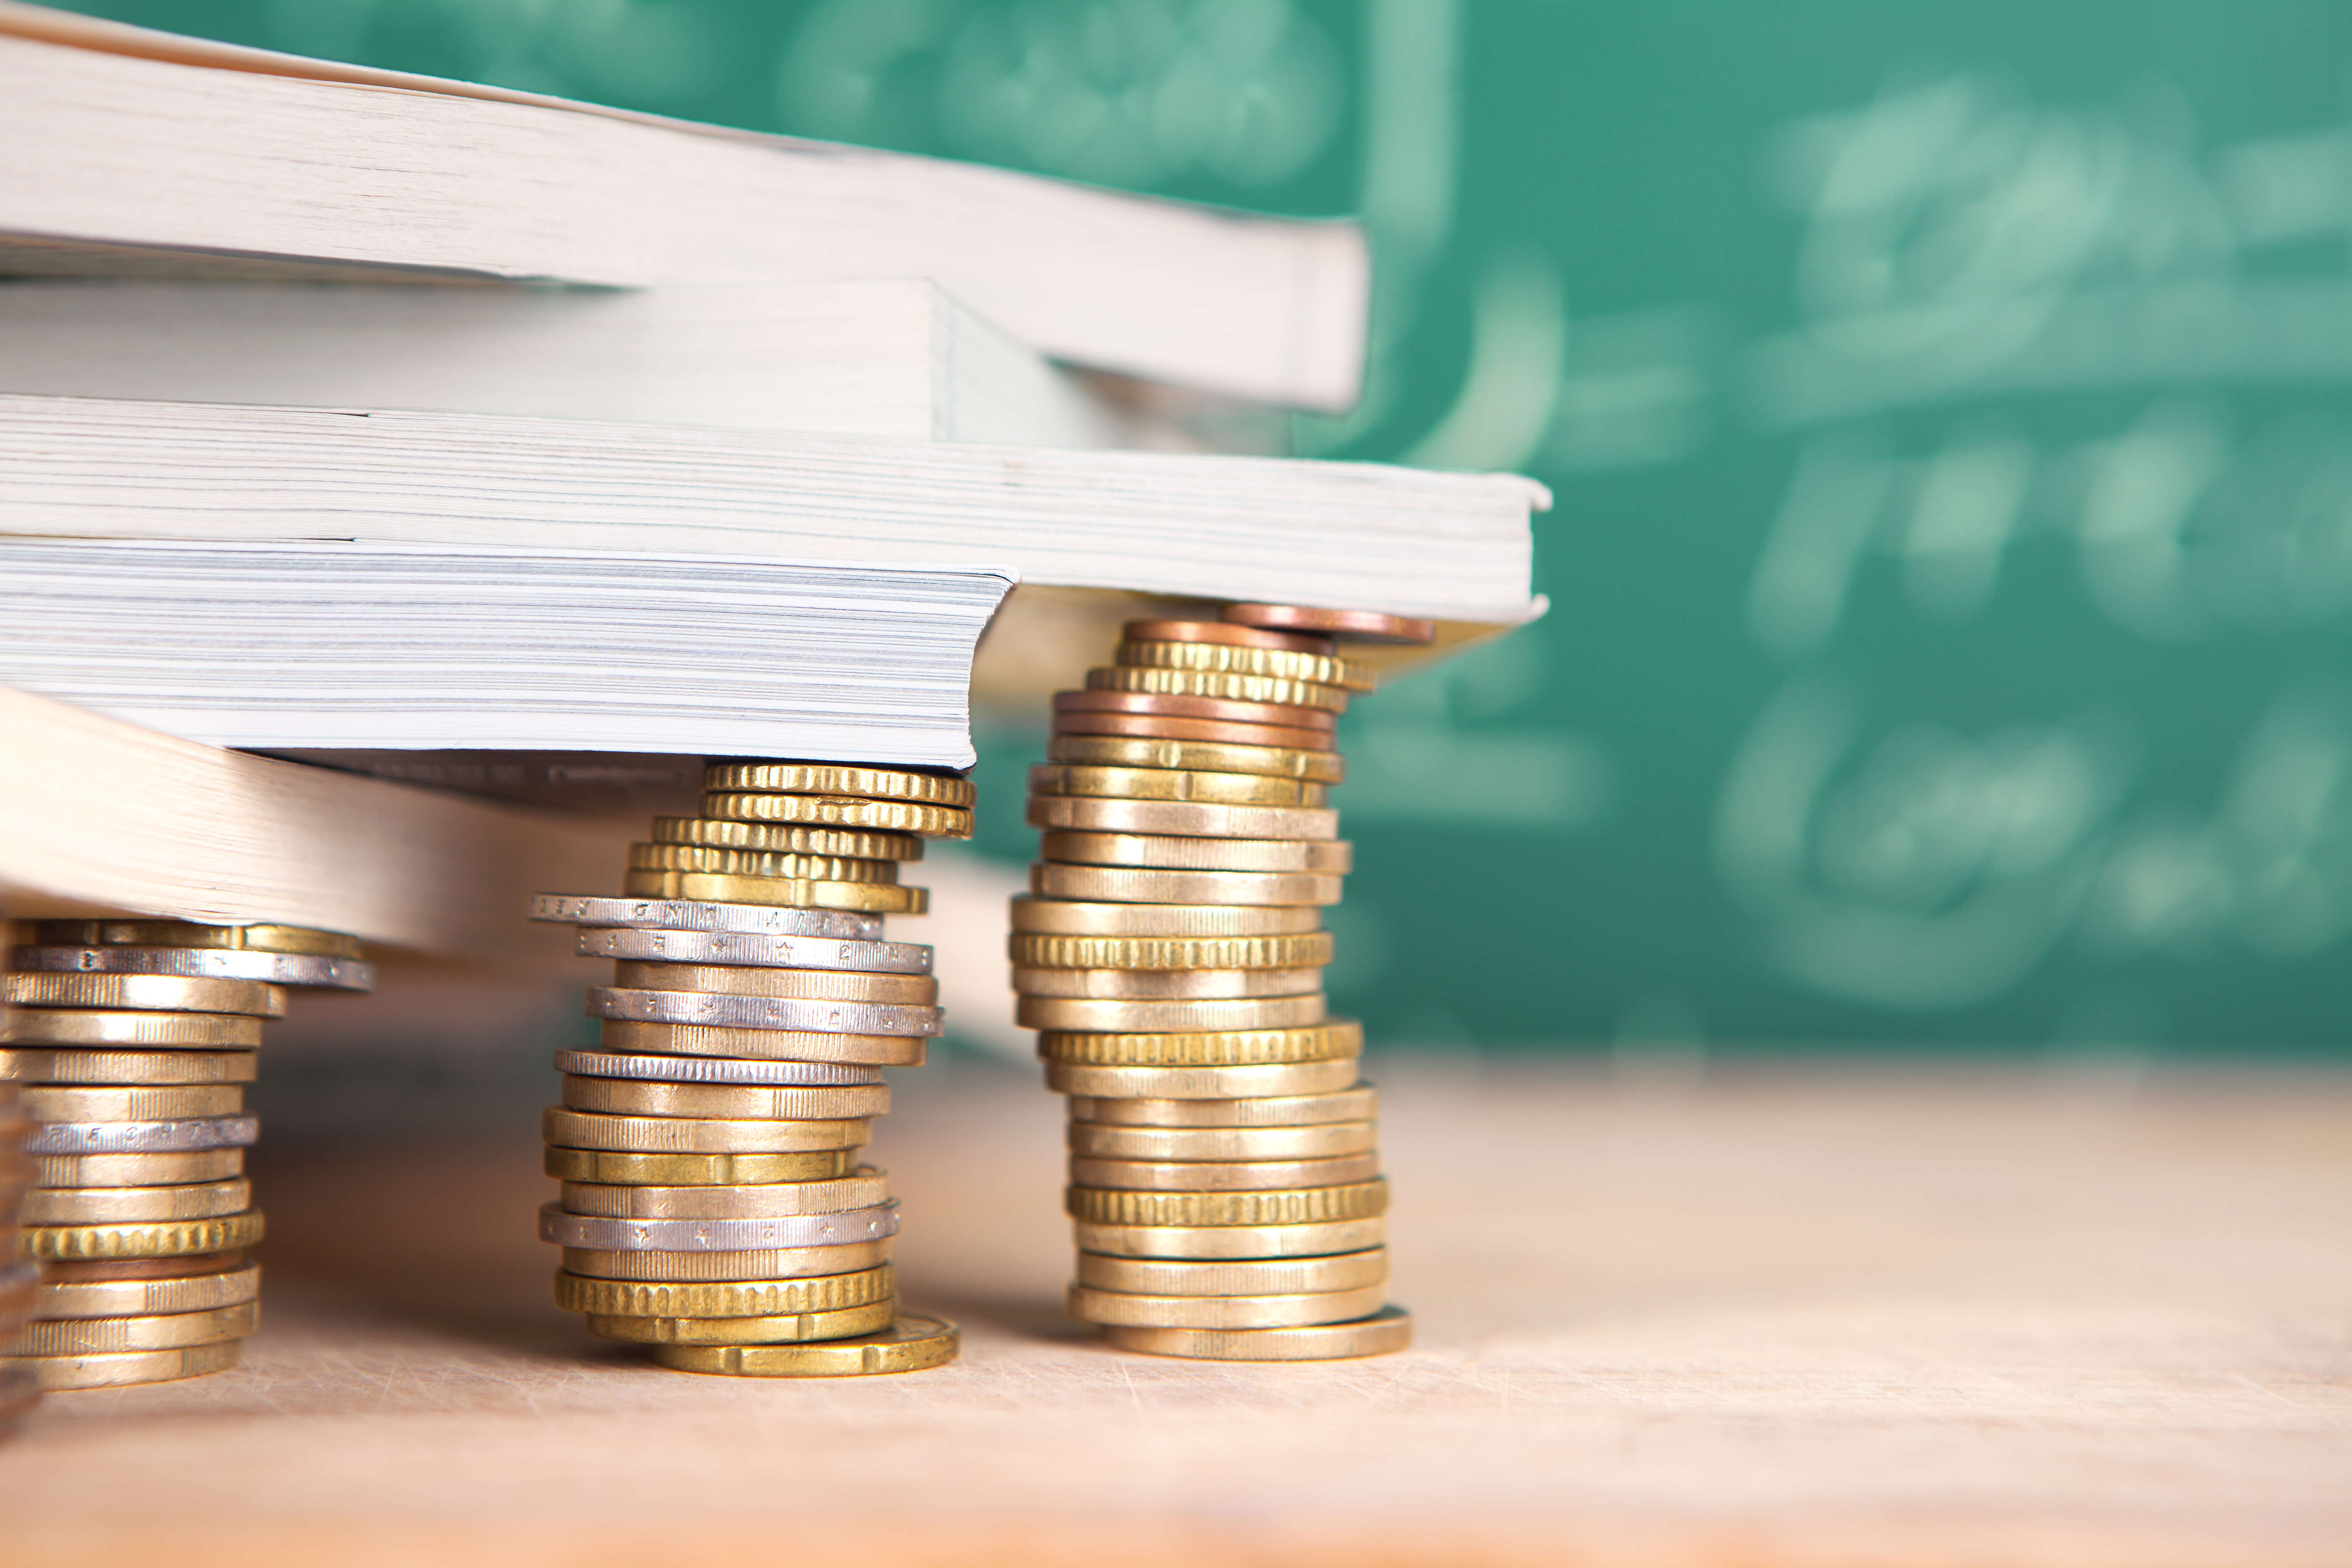 High-Priced Textbooks Hinder Students